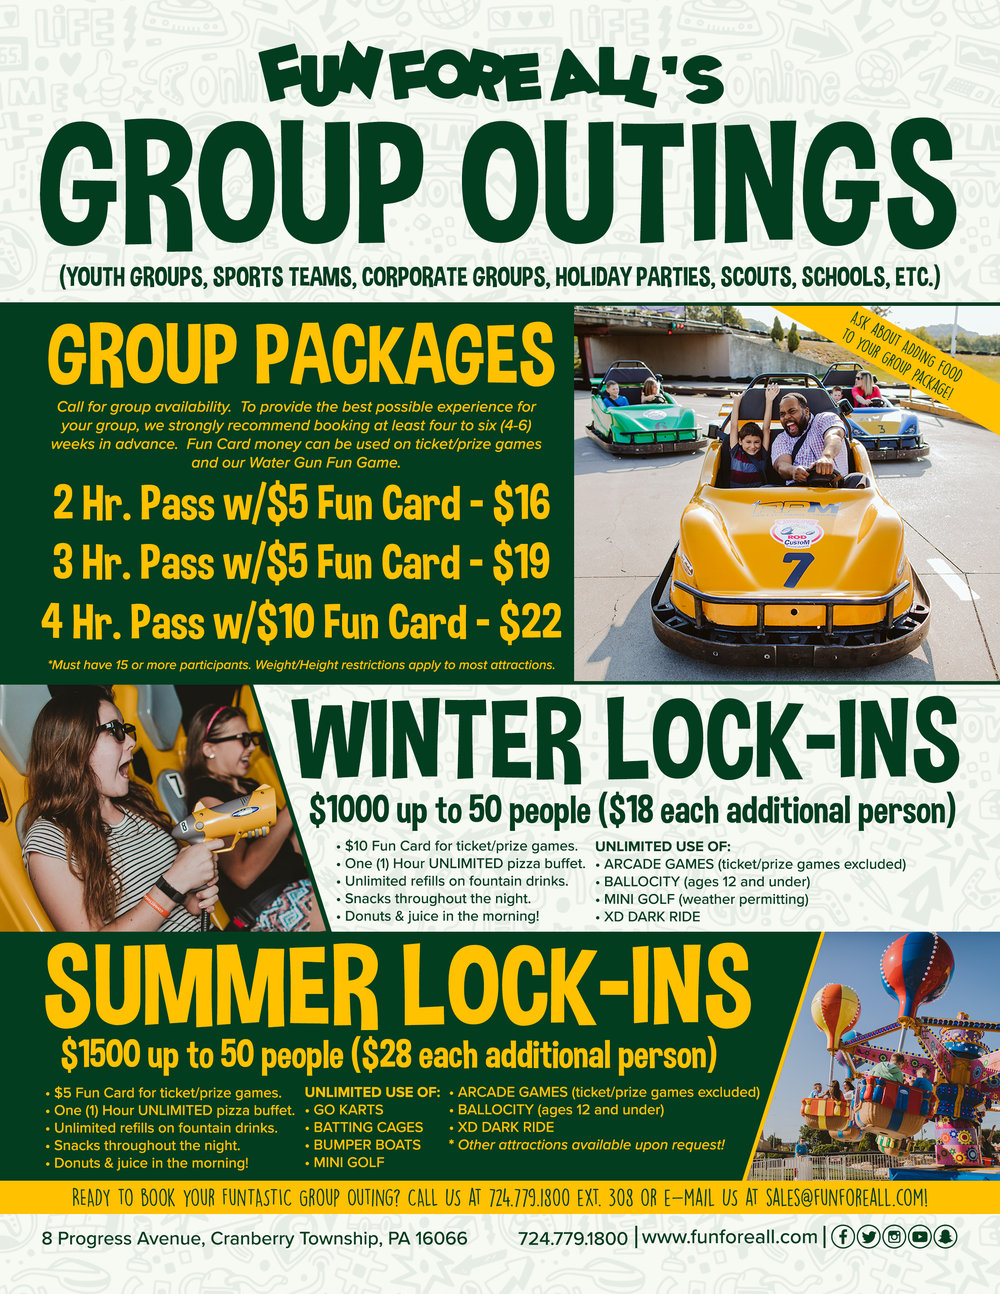 GROUP OUTINGS FLYER